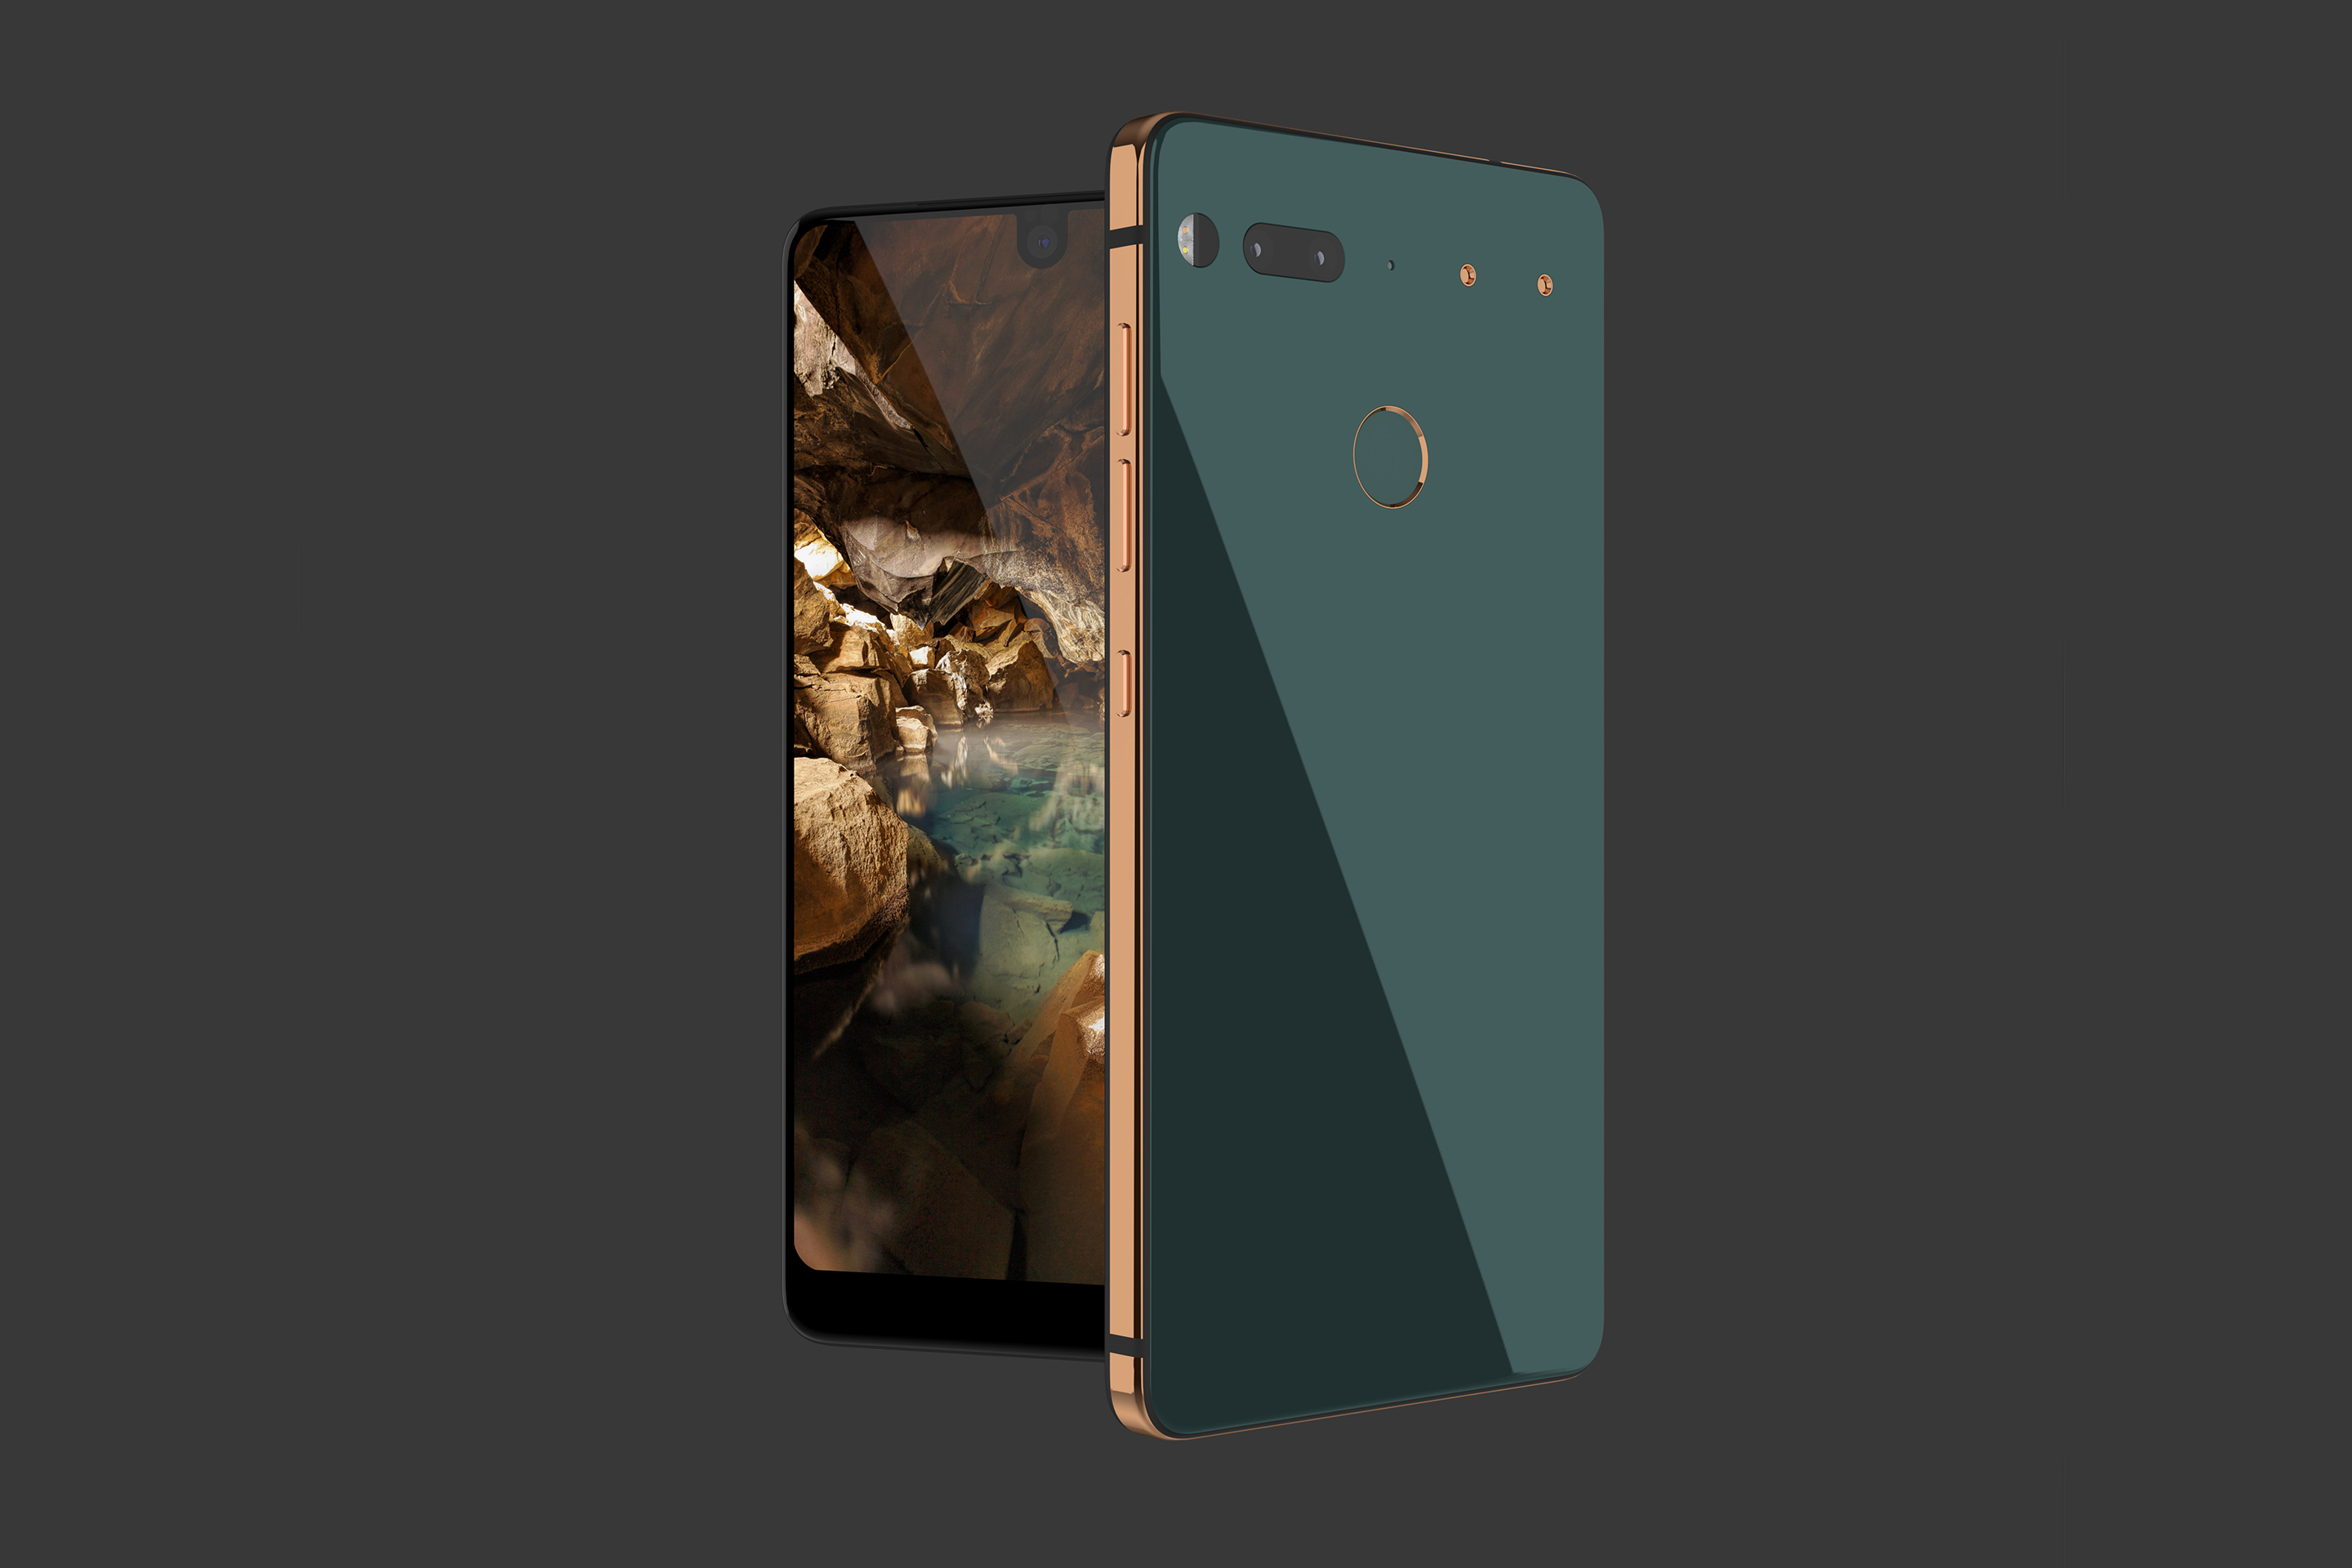 The first smartphone from Essential, the new startup from Android creator Andy Rubin.